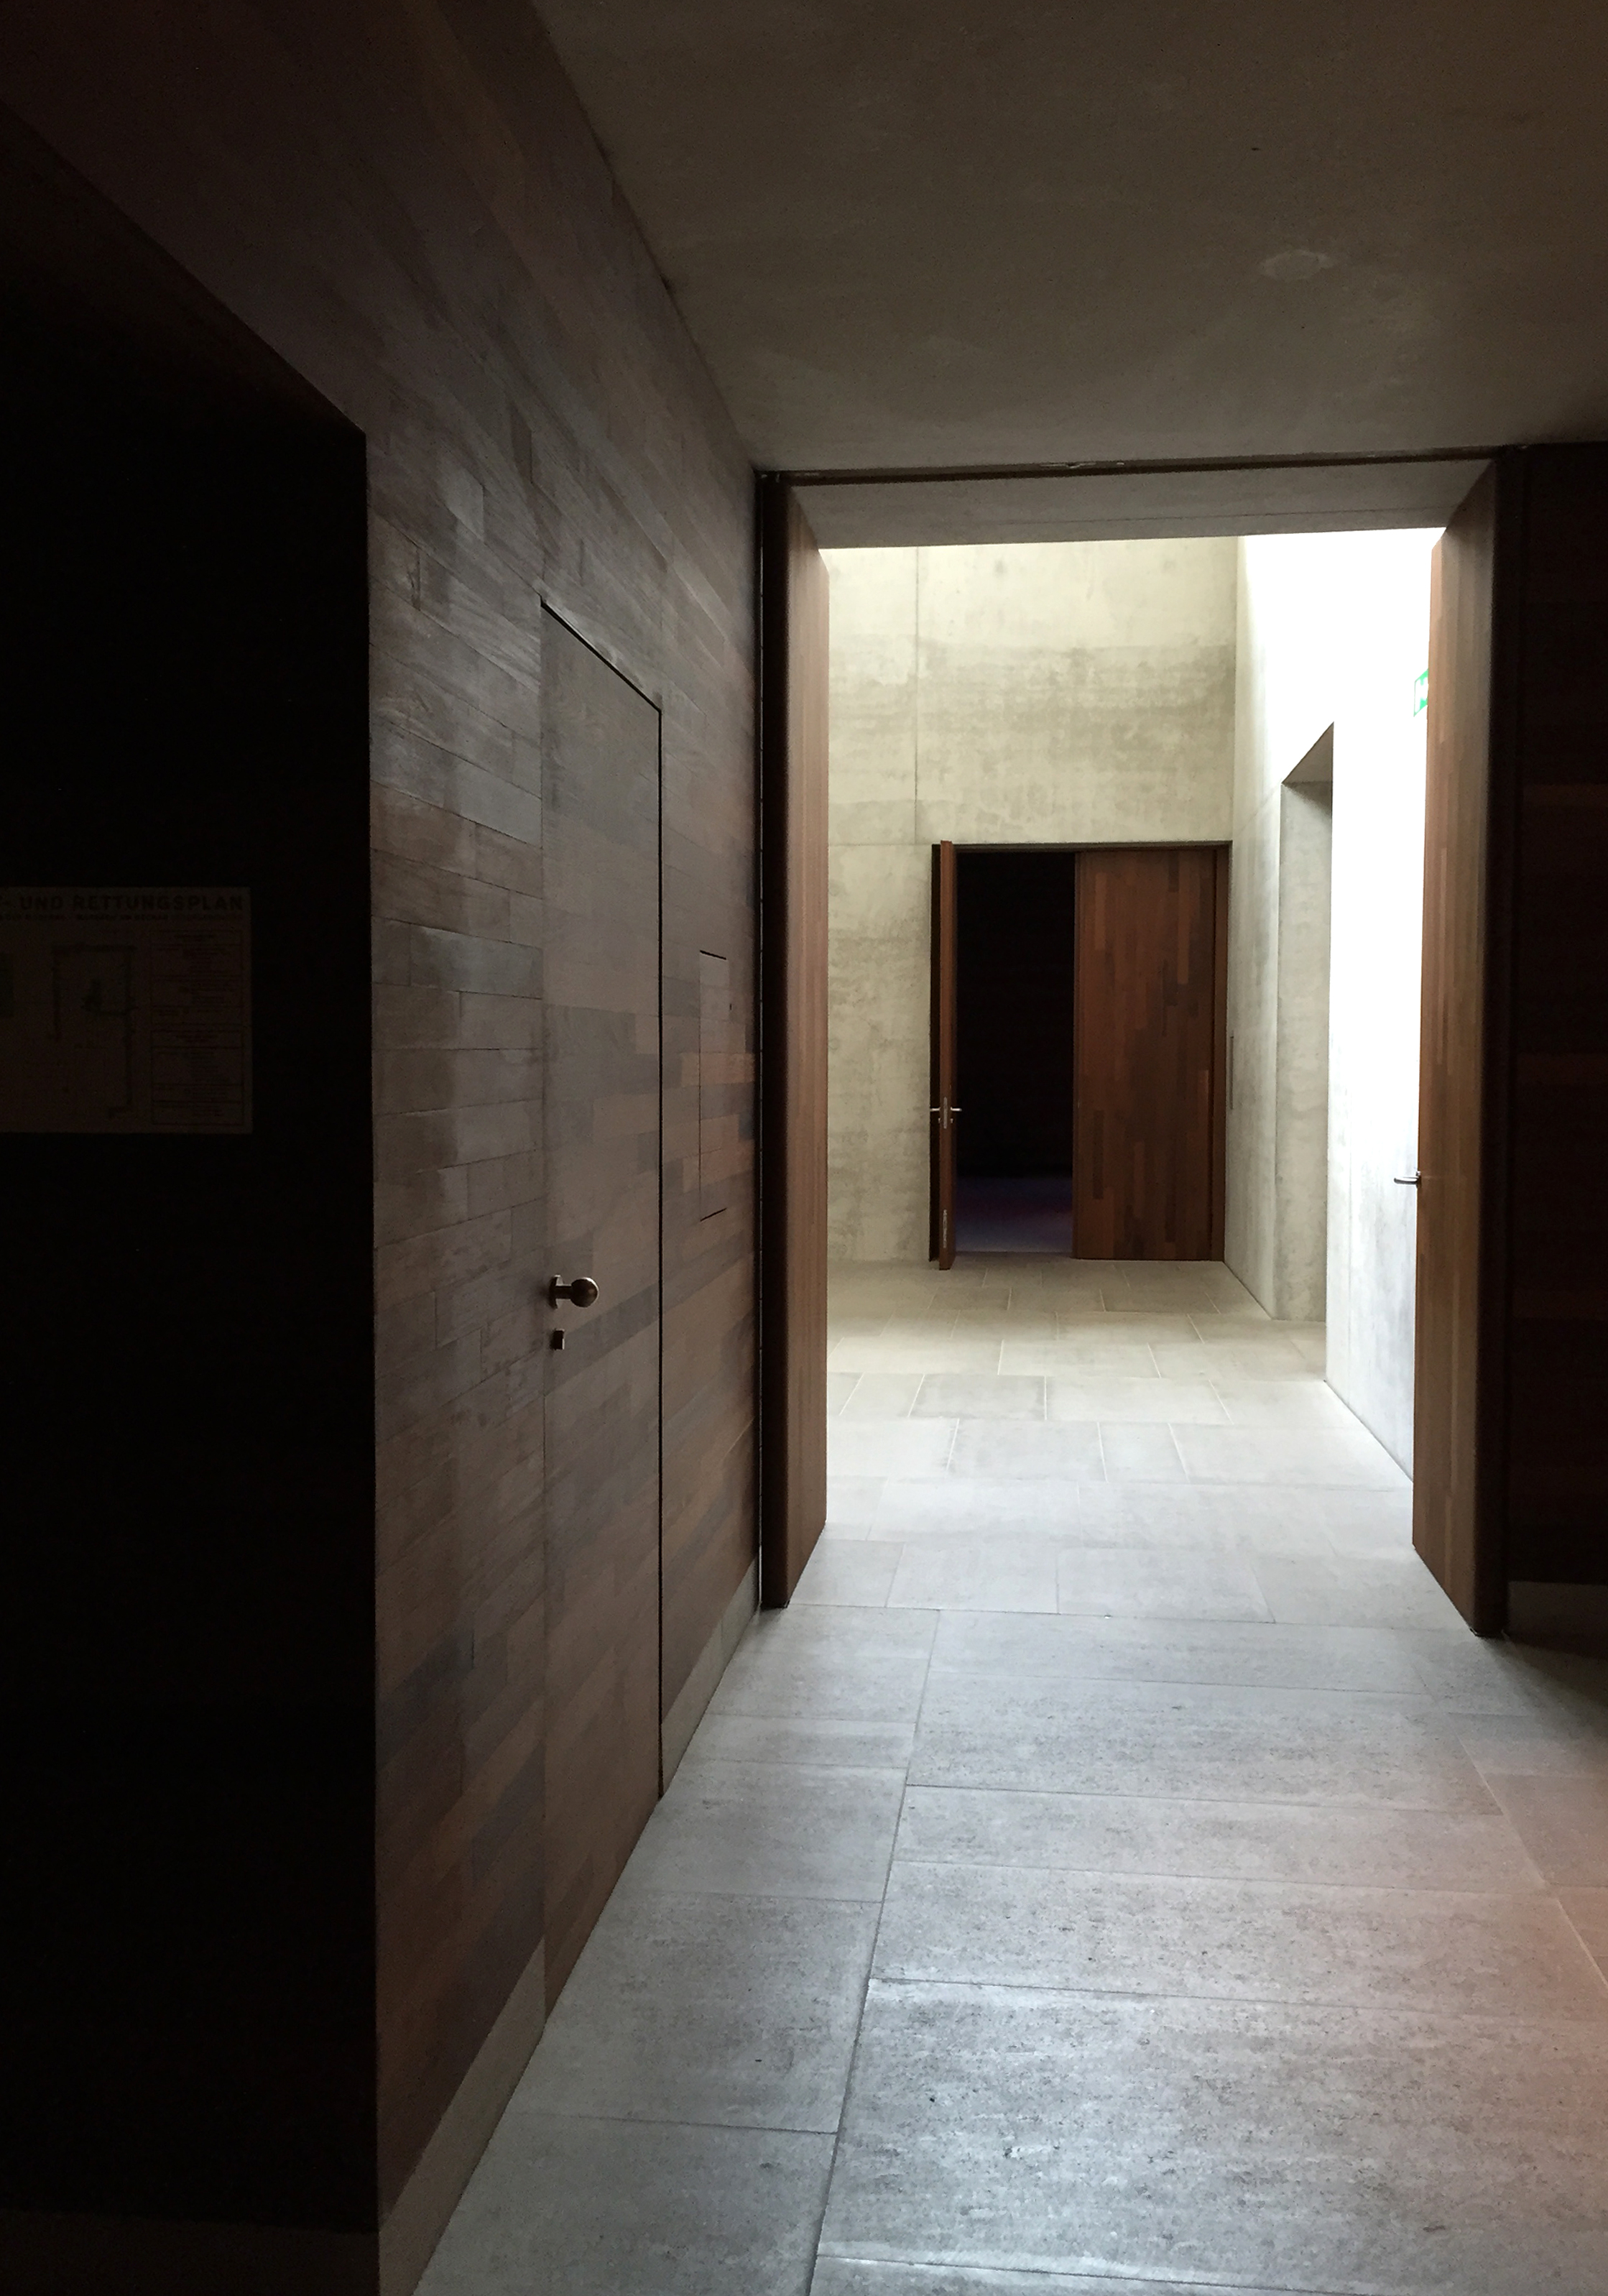 Warm timber walls and doors offset some of the coolness of the required temperature of 18 degrees while fair-faced concrete reflects light and provides contrasting planes to draw visitors through from dark spaces into light.  Circulation routes around the museum are entirely arbitrary.